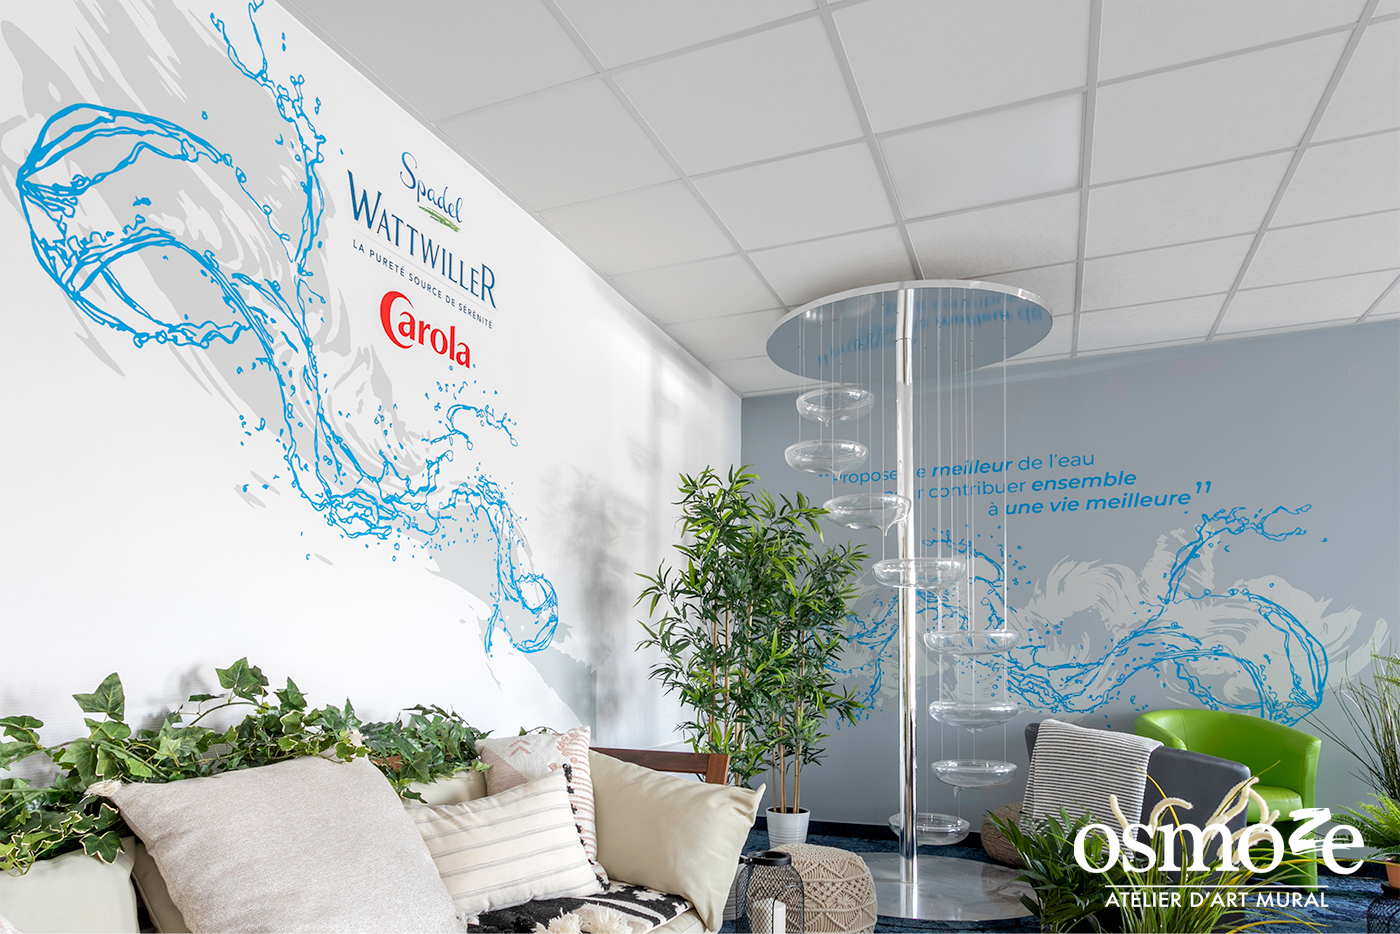 Décoration murale > Osmoze > Fresque design > Wattwiller